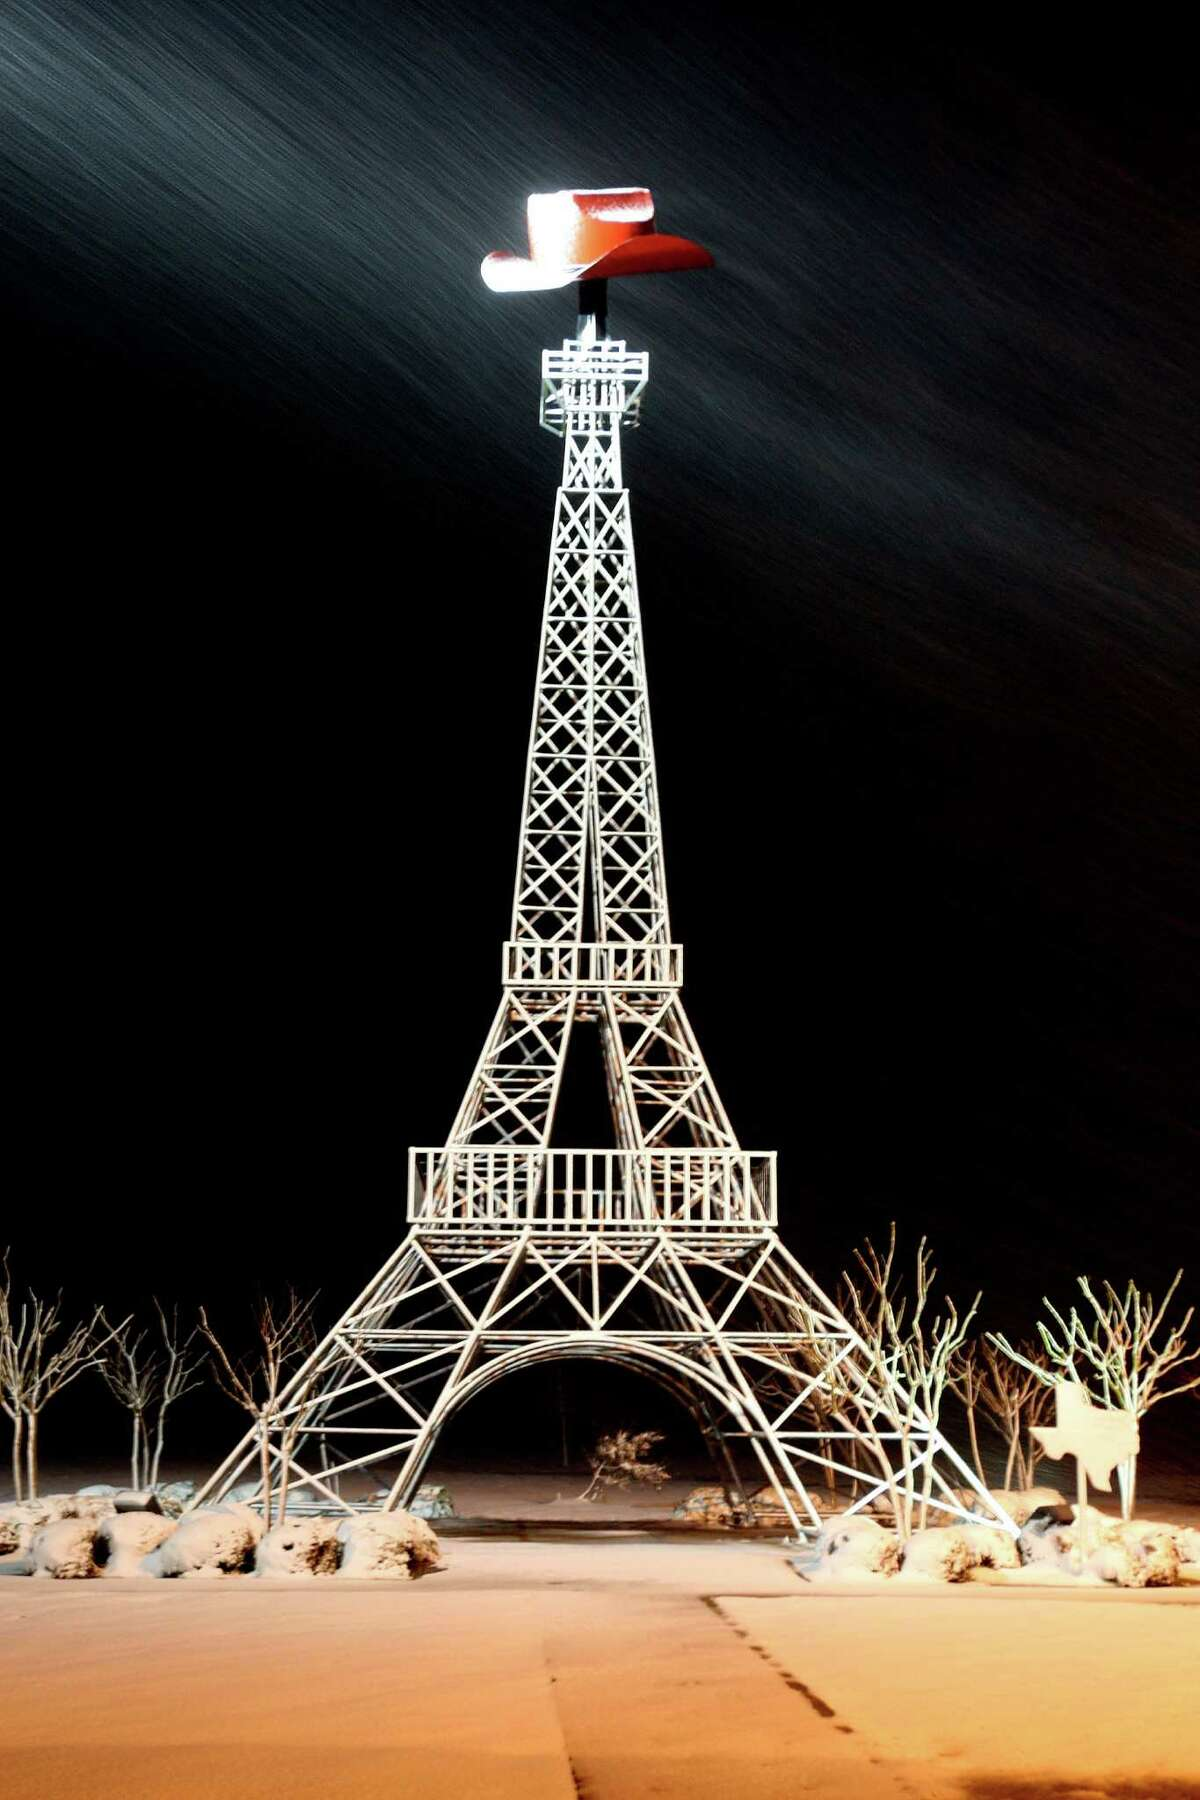 We could have built the biggest Eiffel Tower, but we didn't because it wouldn't be very nice to France.PHOTO: Snow flurries can be seen blowing past the